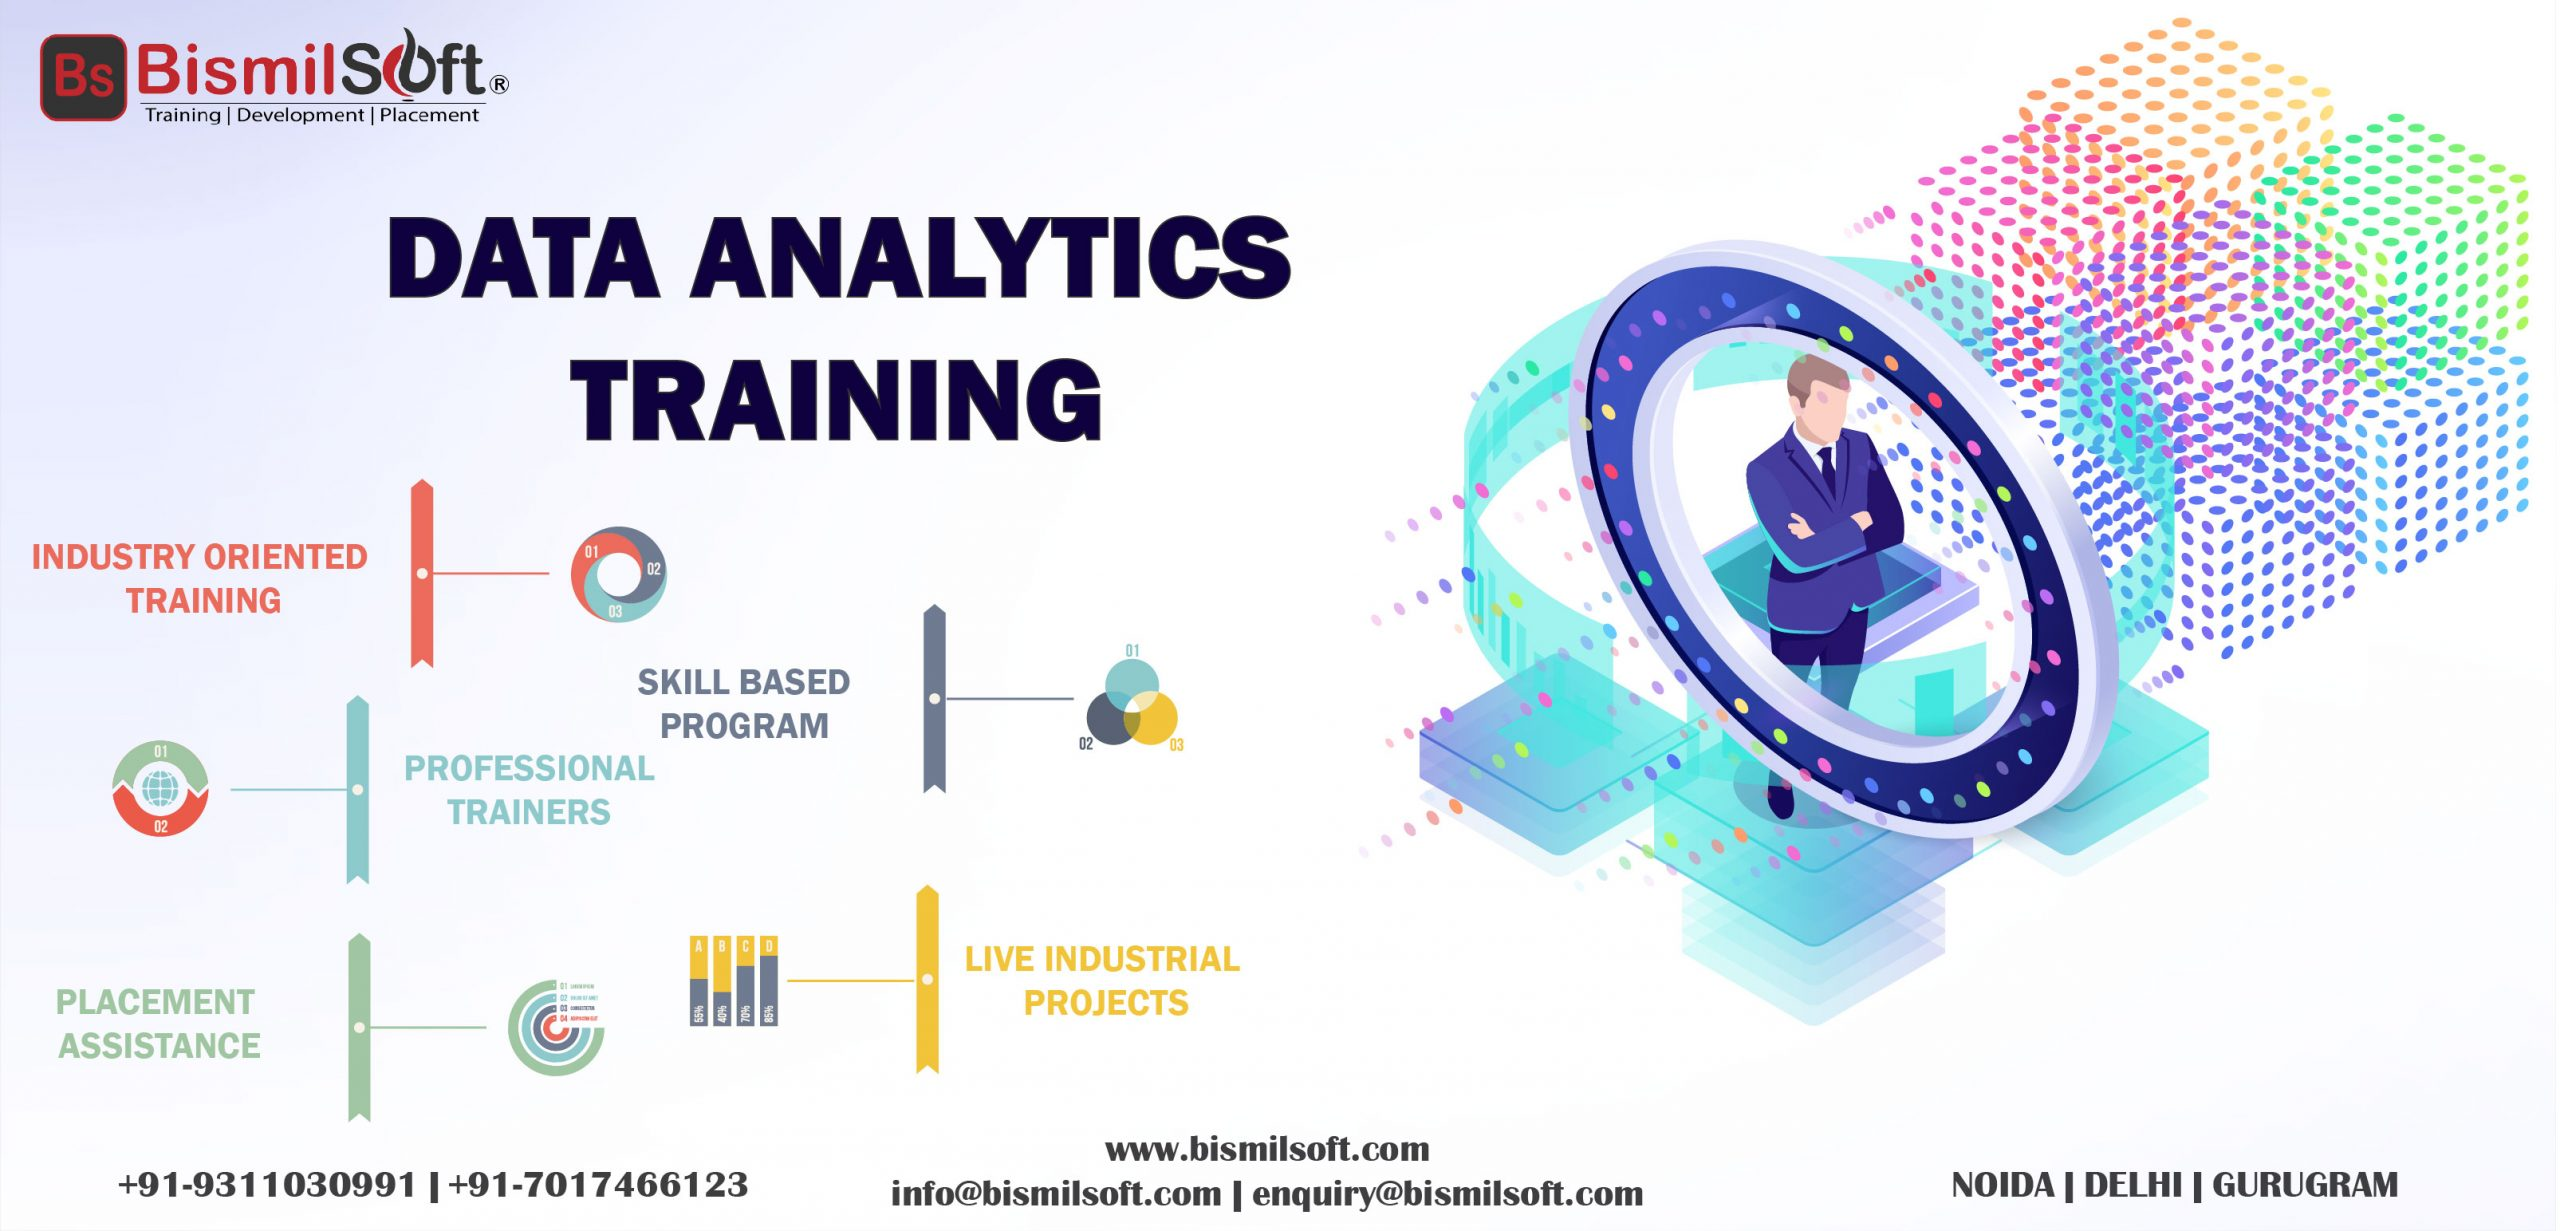 How can I get free Data Analytics certification?, Latest News Adda